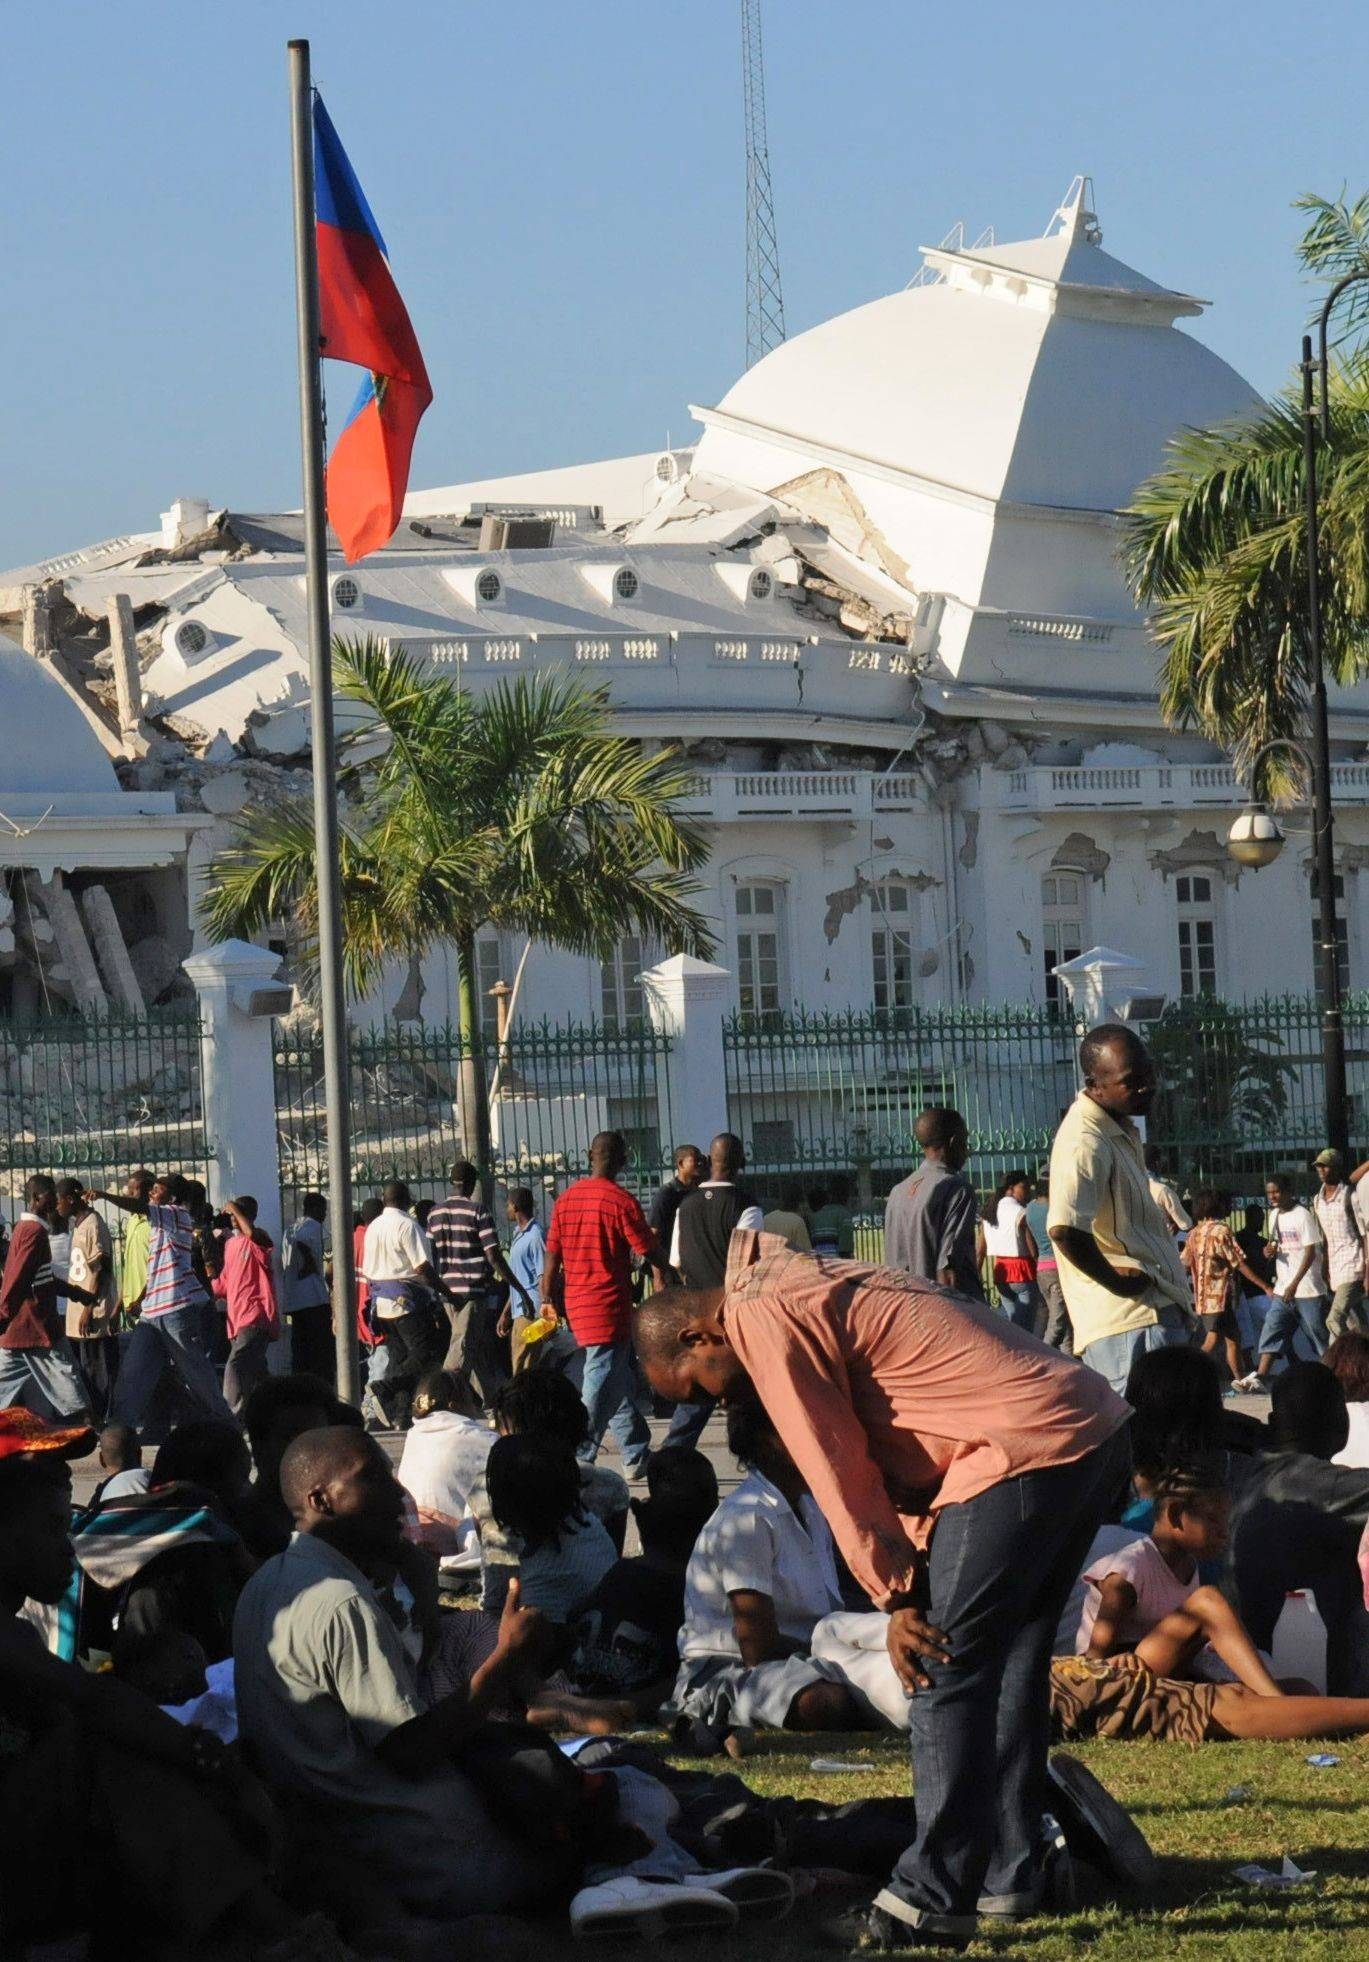 People gather outside Haiti's National Palace which was damaged by an earthquake in Port-au-Prince, Haiti, Wednesday, Jan. 13, 2010.